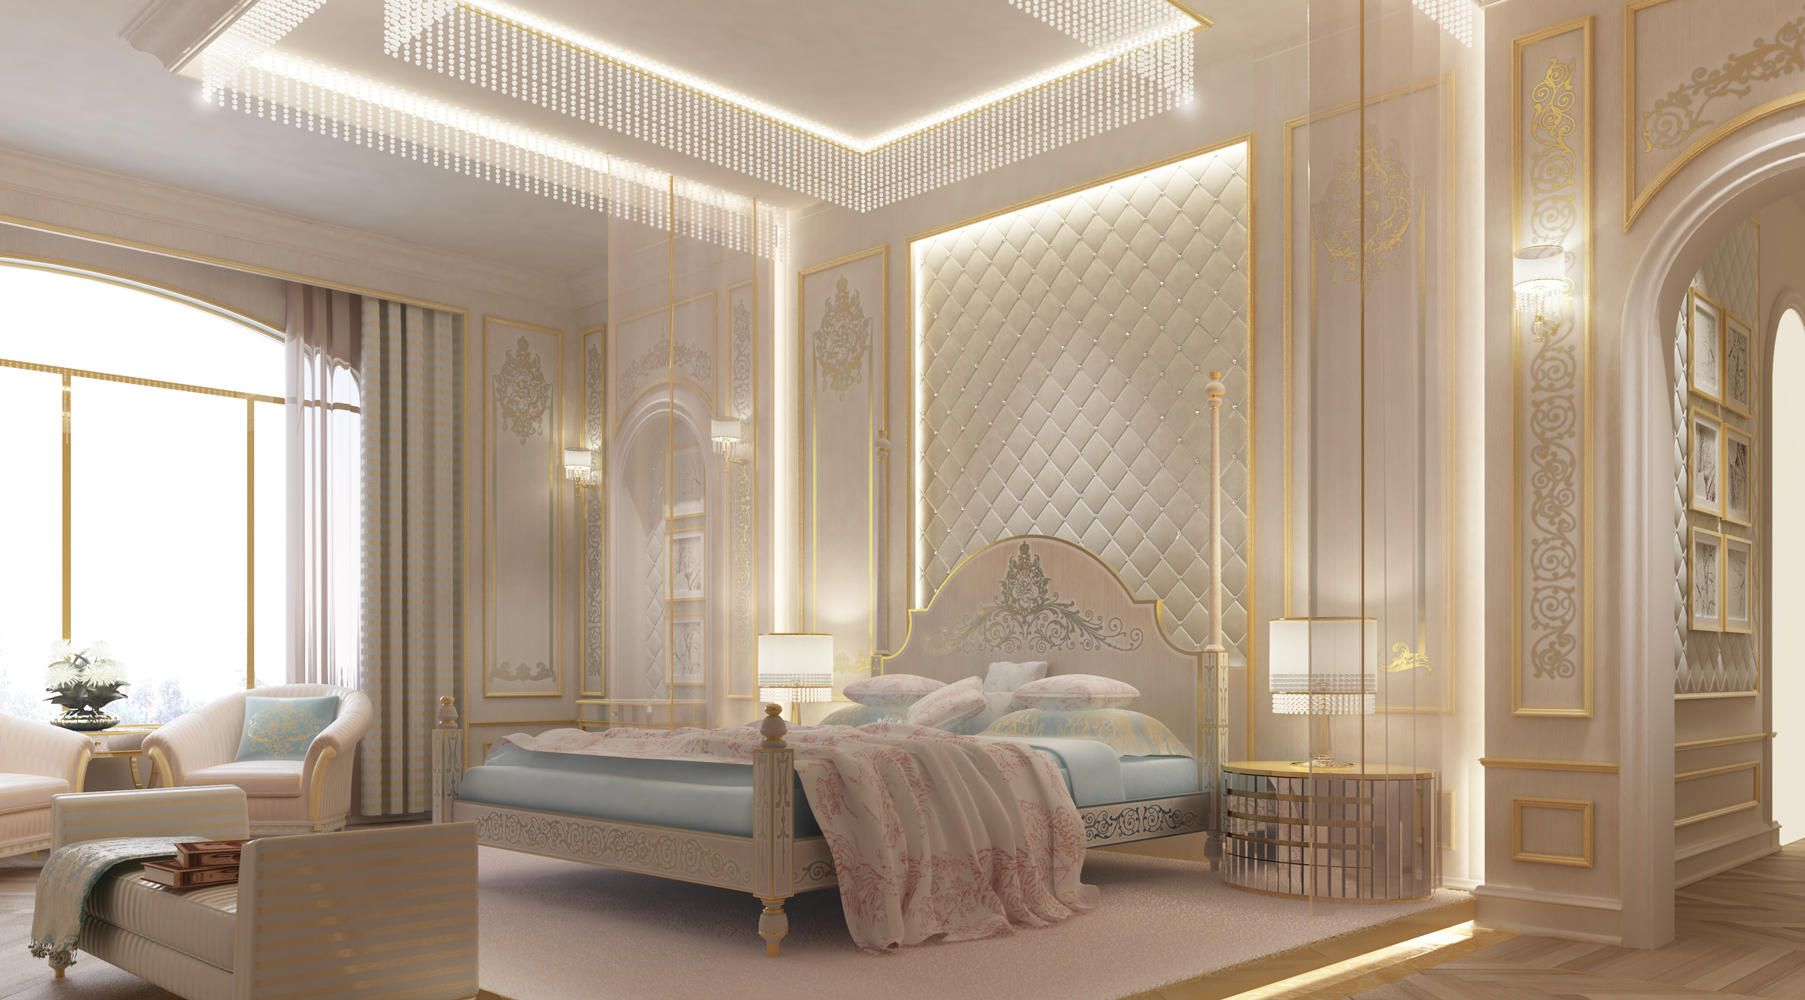 Dubai bedroom bedroom design abu dhabi d for Interior desings